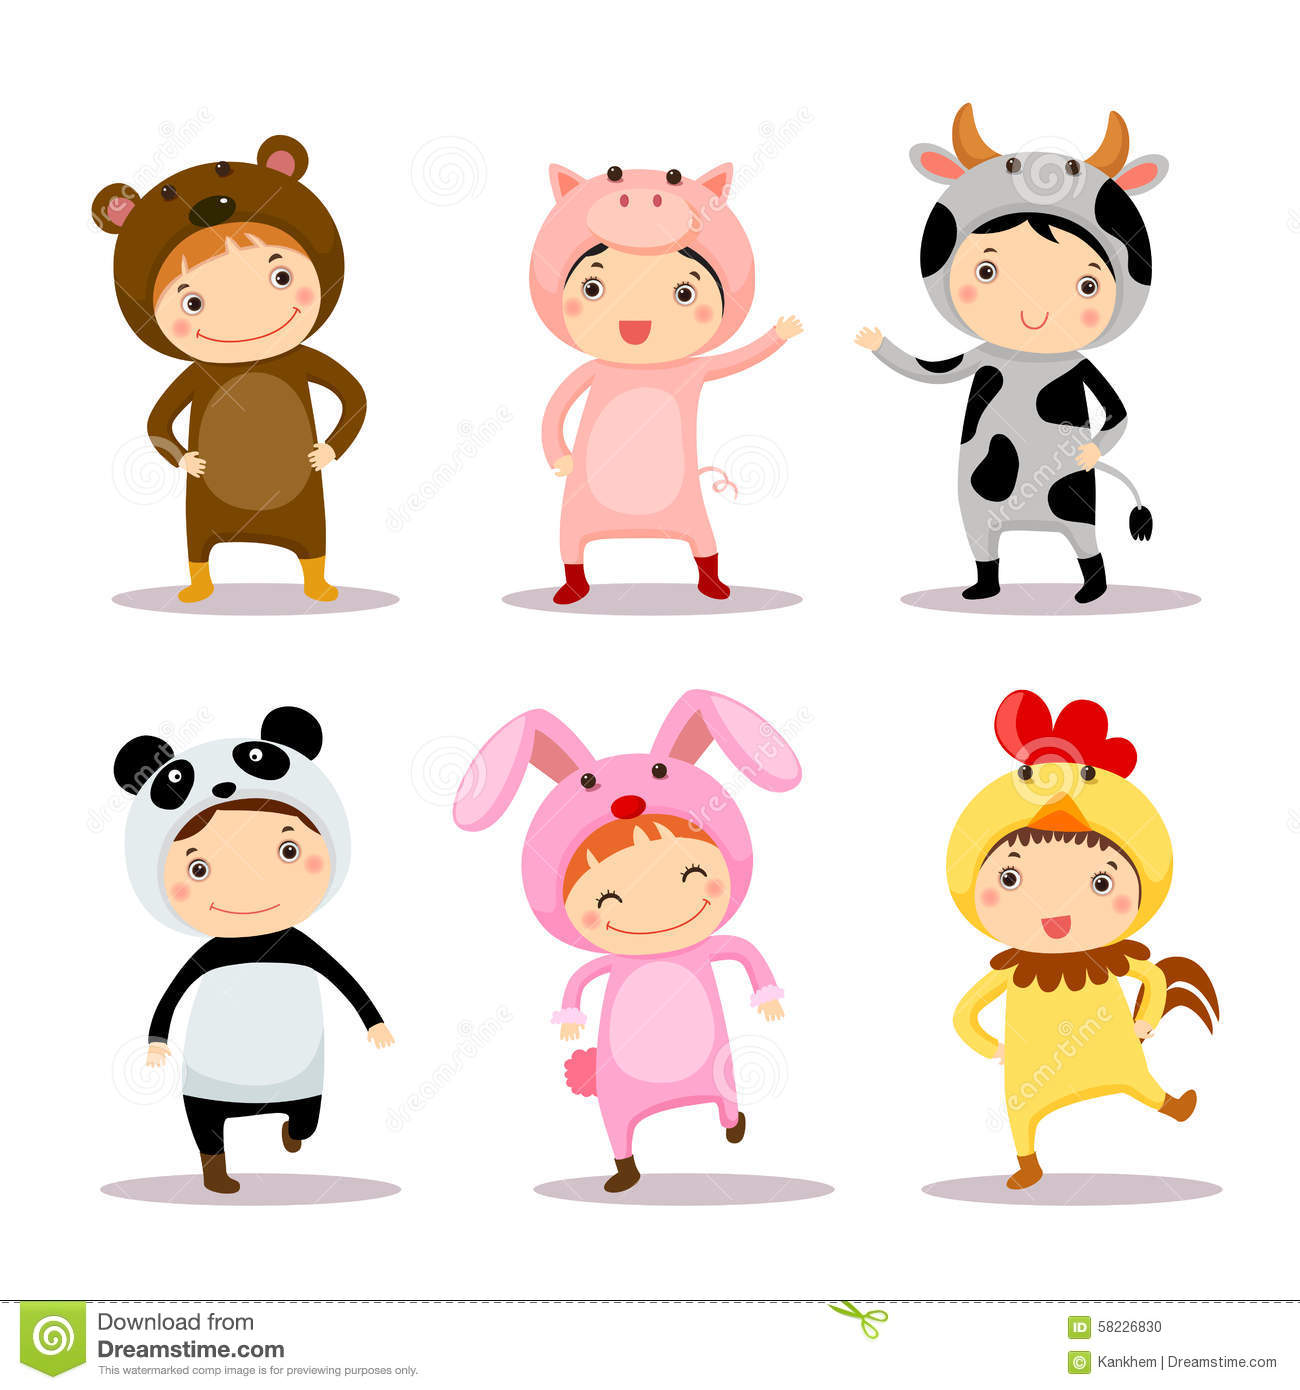 Fall Wallpaper Border Illustration Of Cute Kids Wearing Animal Costumes Stock